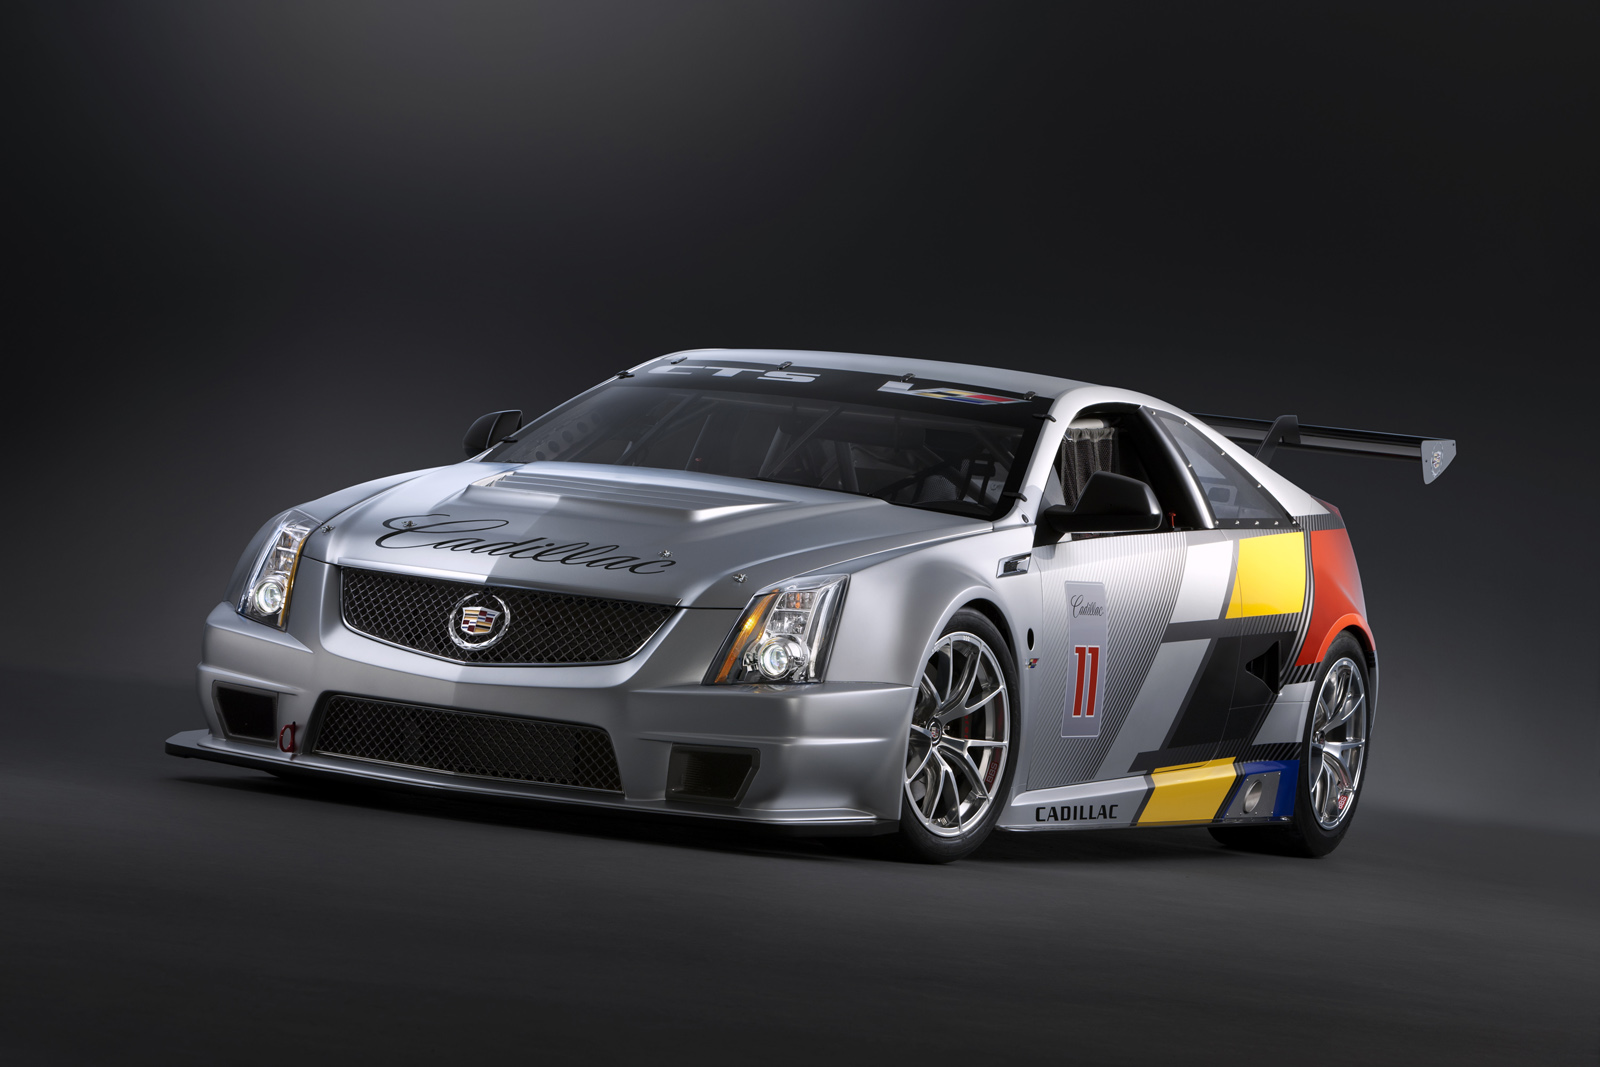 cadillac forged widescreen ac exotic v coupe used cts schnitzer wheels wallpaper strasse